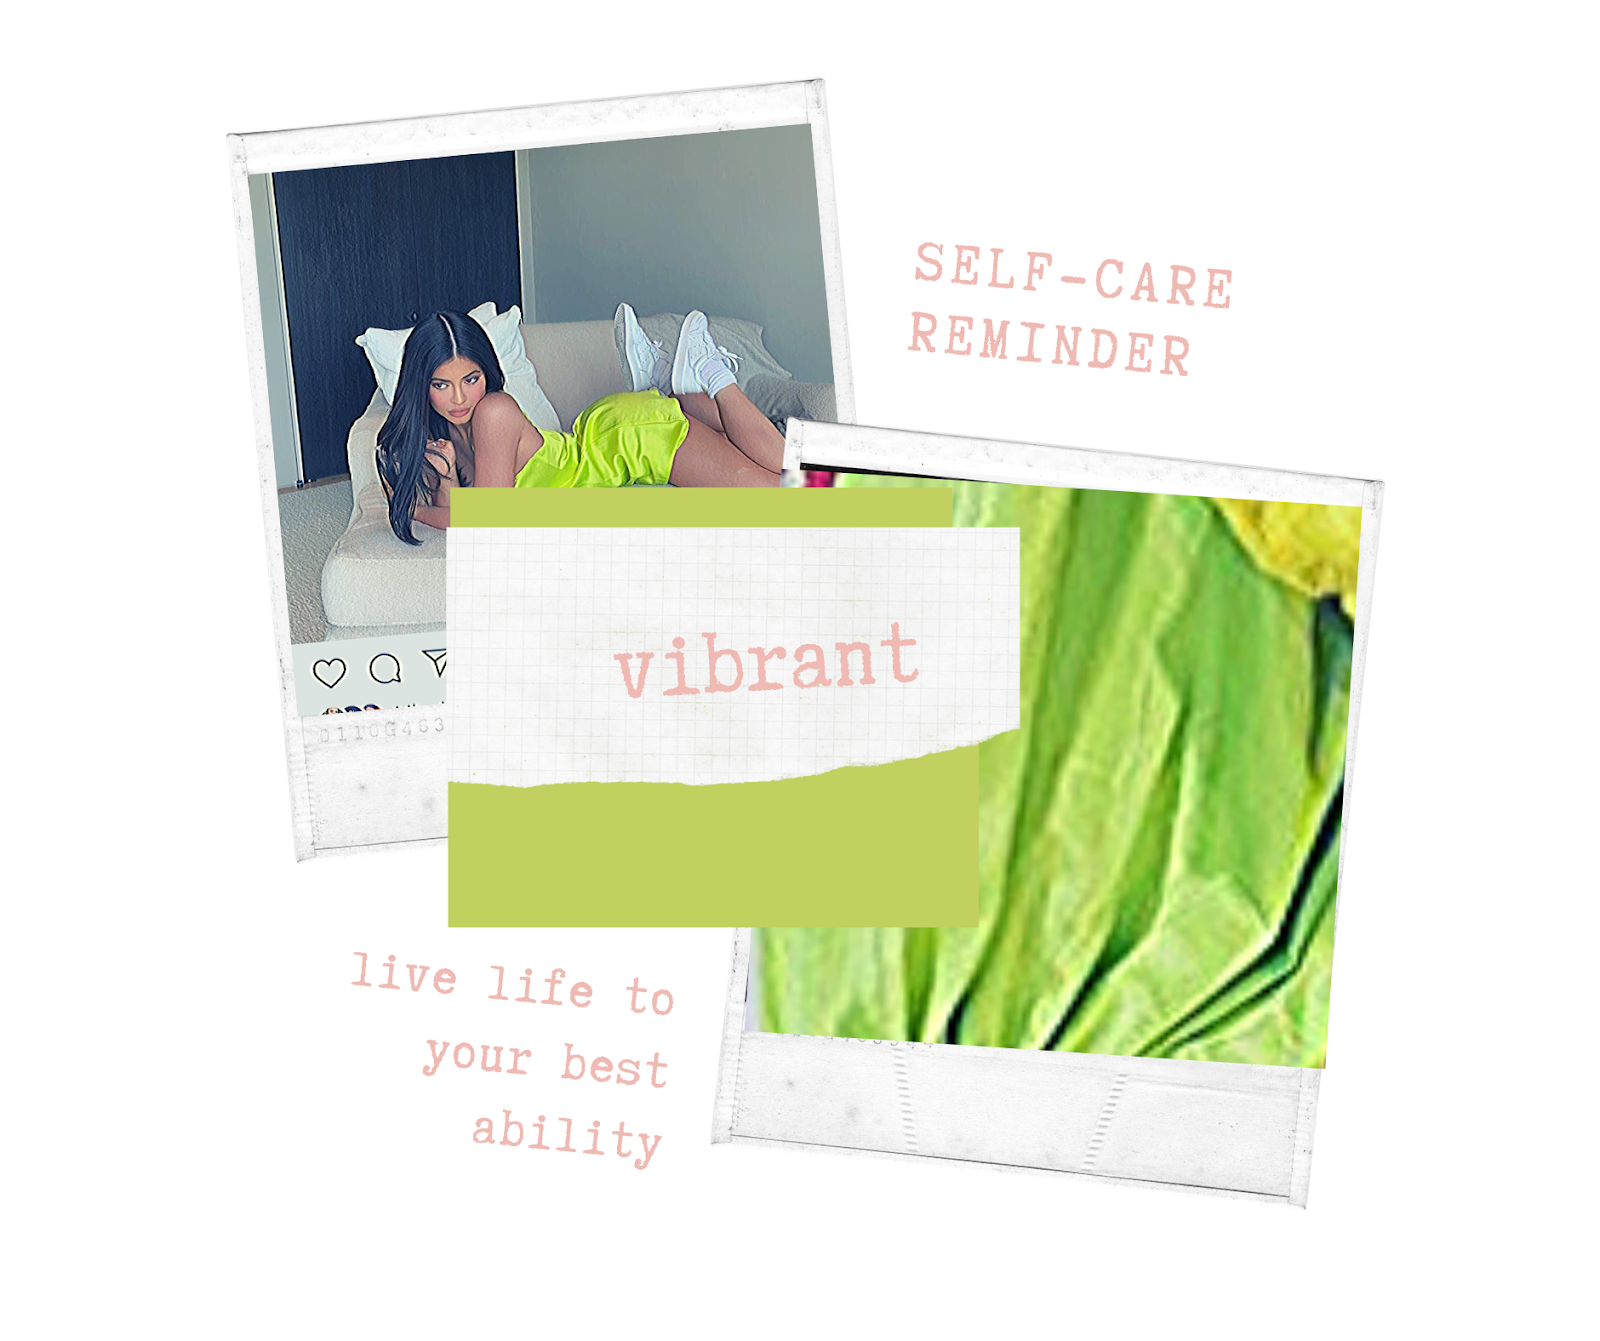 Instagram graphic of kylie jenner in a lime green/neon green dress and the word vibrant